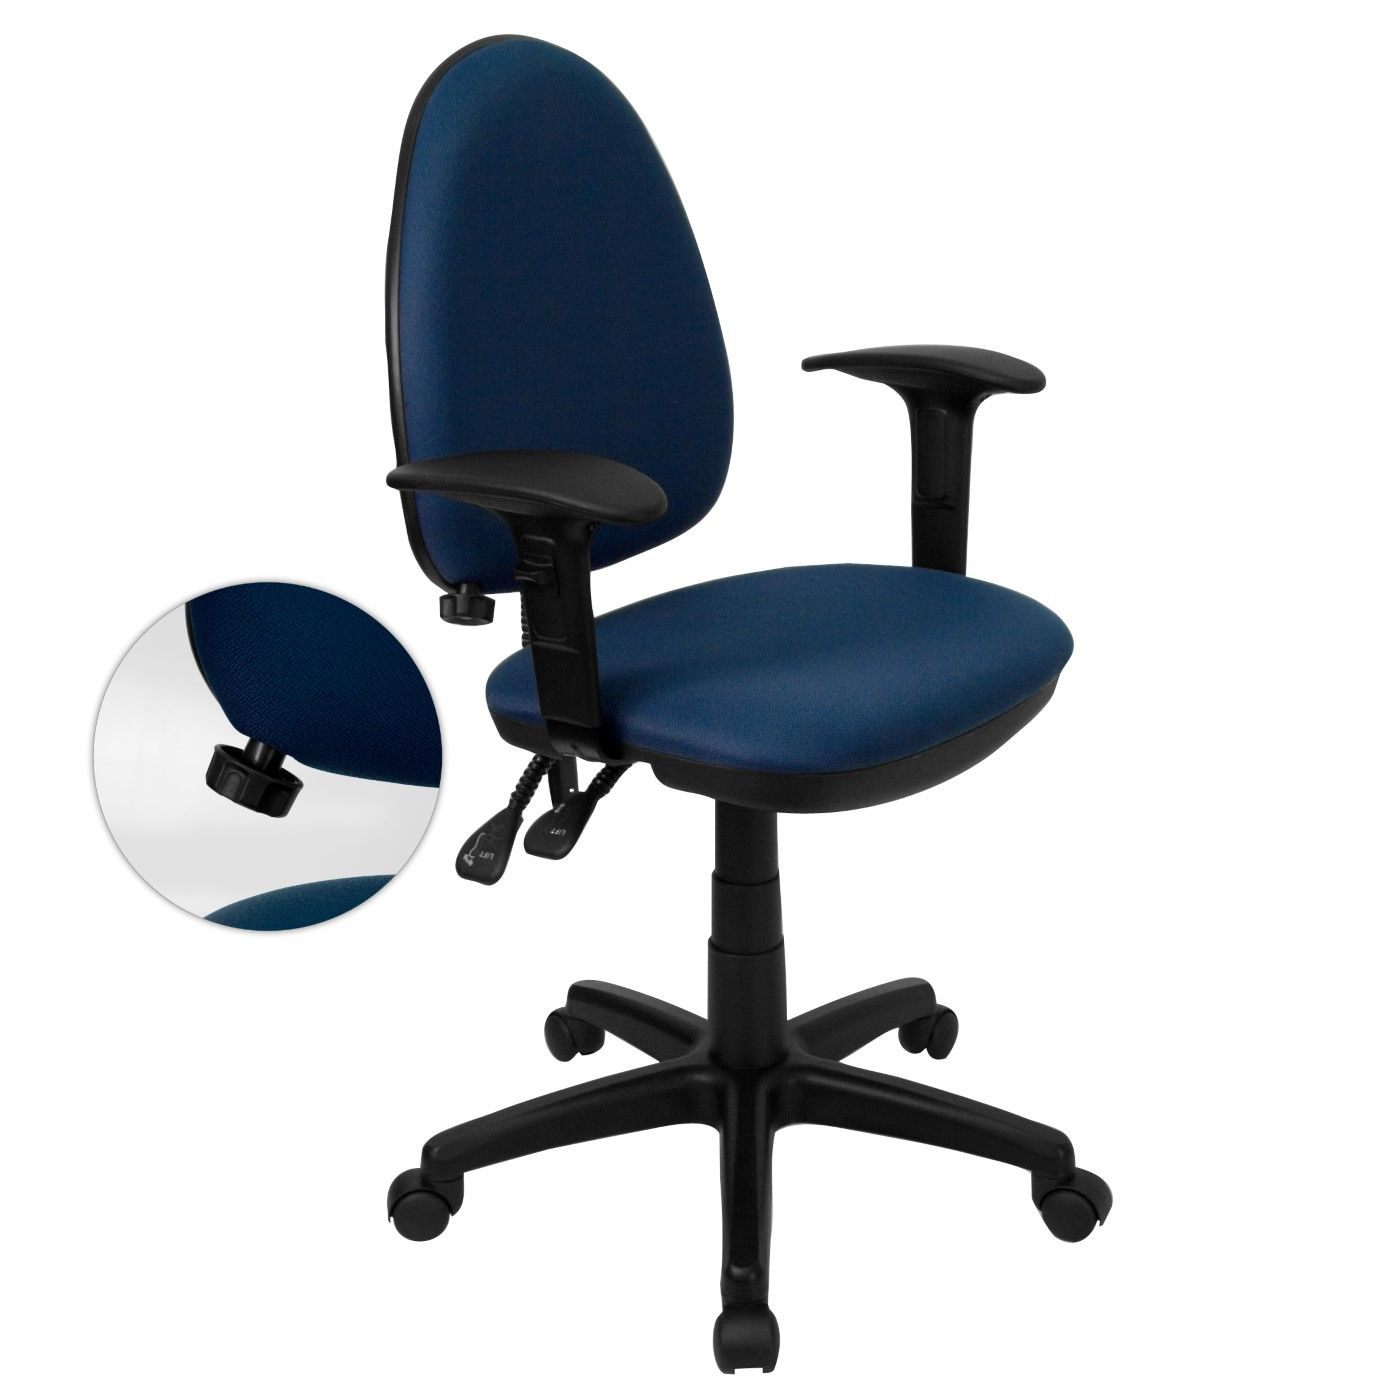 Mid-Back Navy Blue Fabric Multifunction Swivel Ergonomic Task Office Chair with Adjustable Lumbar Support & Arms